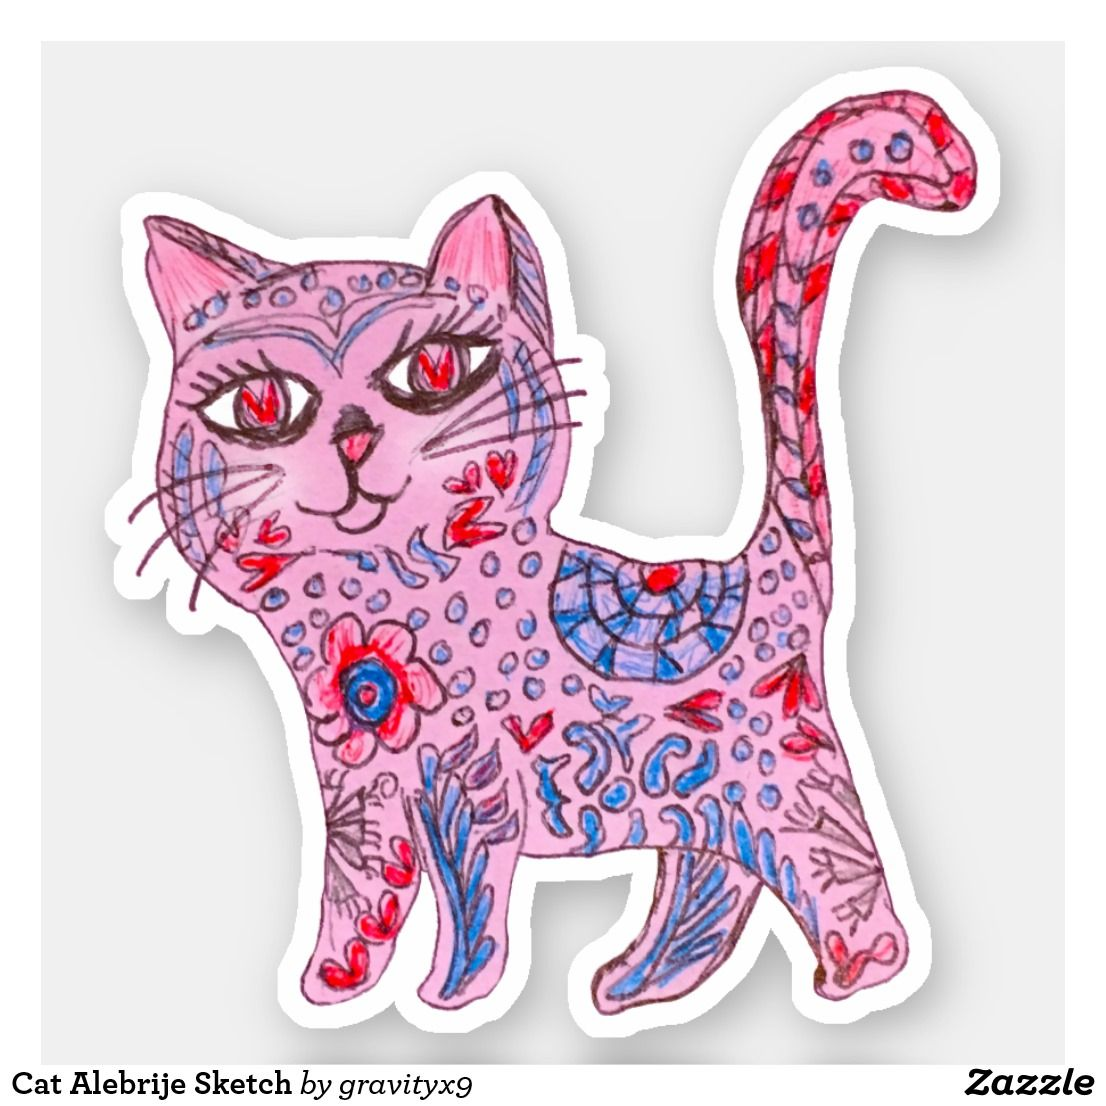 Cat Alebrije Sketch Sticker |  * Cat Alebrije Sketch Sticker  by at * Cutout stickers are available in several size options.* Choose size and use for DIY projects, projects and scrap booking ideas, too! * contour stickers * stickers laptop ideas * cut out stickers * stickers for school * stickers for crafting * stickers for kids *